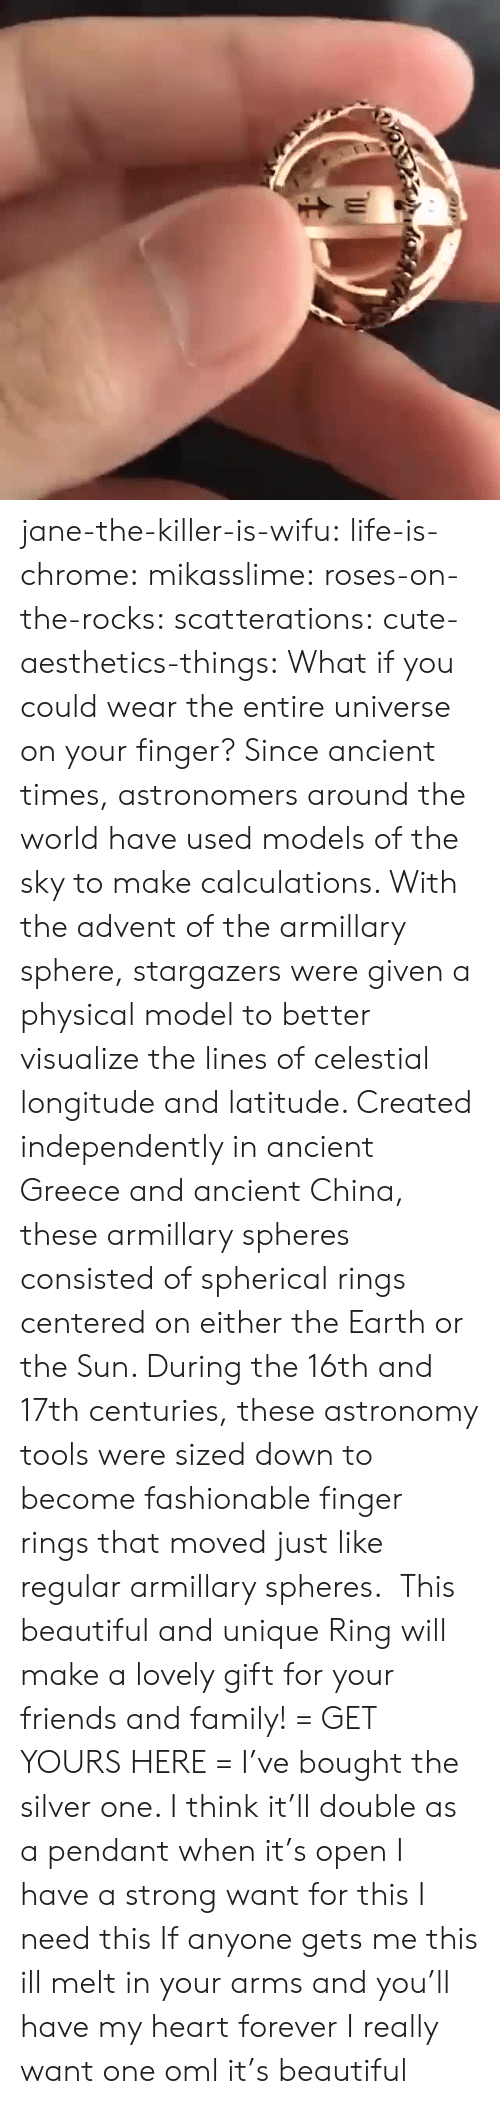 the killer: jane-the-killer-is-wifu:  life-is-chrome:  mikasslime:  roses-on-the-rocks:  scatterations:  cute-aesthetics-things: What if you could wear the entire universe on your finger? Since ancient times, astronomers around the world have used models of the sky to make calculations. With the advent of the armillary sphere, stargazers were given a physical model to better visualize the lines of celestial longitude and latitude. Created independently in ancient Greece and ancient China, these armillary spheres consisted of spherical rings centered on either the Earth or the Sun. During the 16th and 17th centuries, these astronomy tools were sized down to become fashionable finger rings that moved just like regular armillary spheres.  This beautiful and unique Ring will make a lovely gift for your friends and family! = GET YOURS HERE =   I've bought the silver one. I think it'll double as a pendant when it's open   I have a strong want for this   I need this  If anyone gets me this ill melt in your arms and you'll have my heart forever  I really want one oml it's beautiful